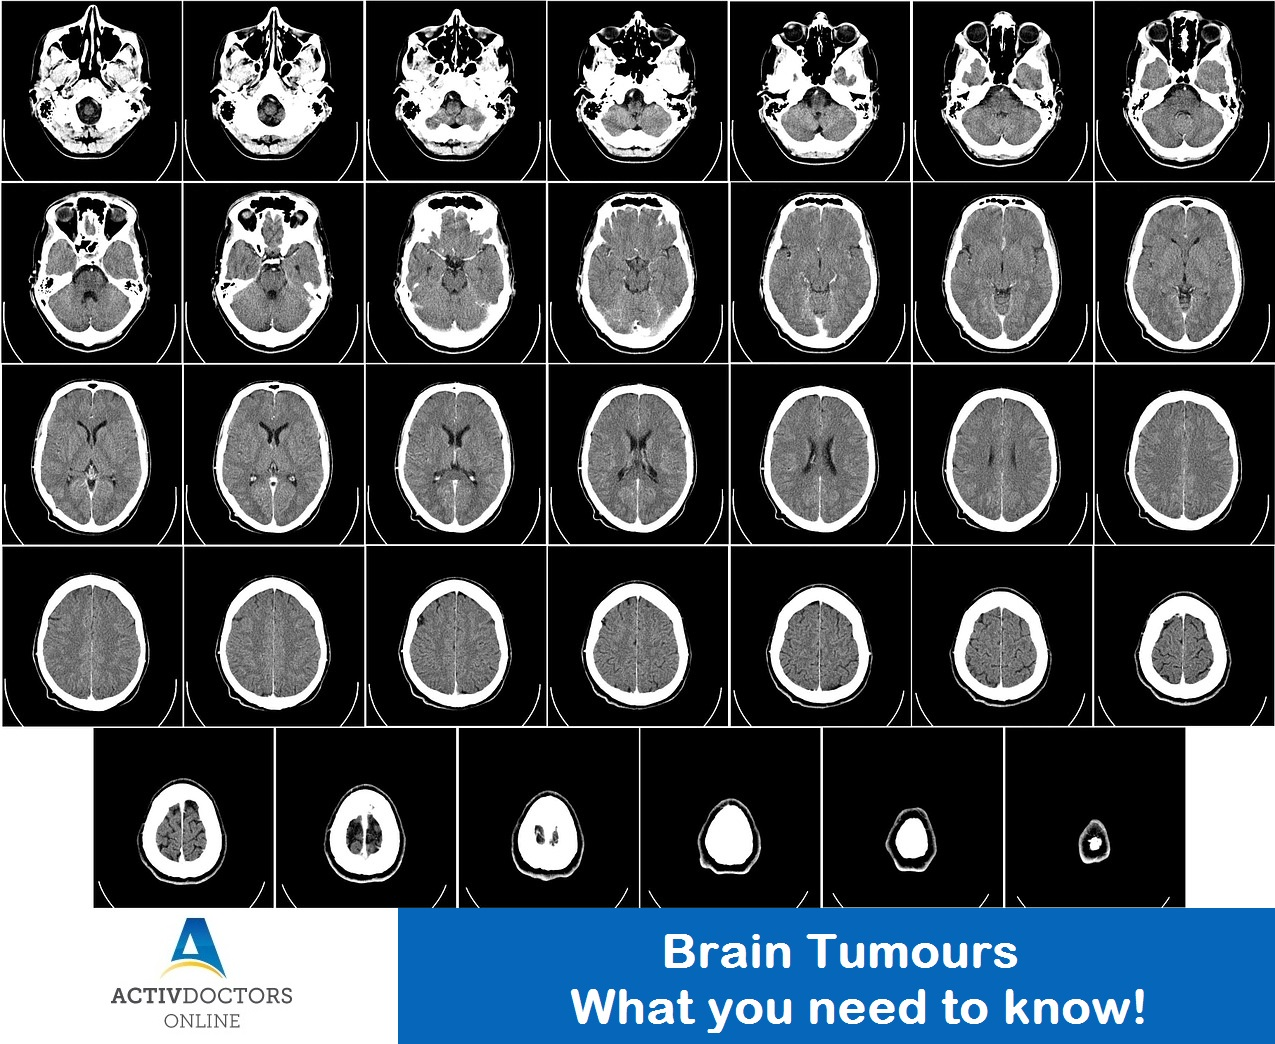 Brain Tumours – What you need to know!